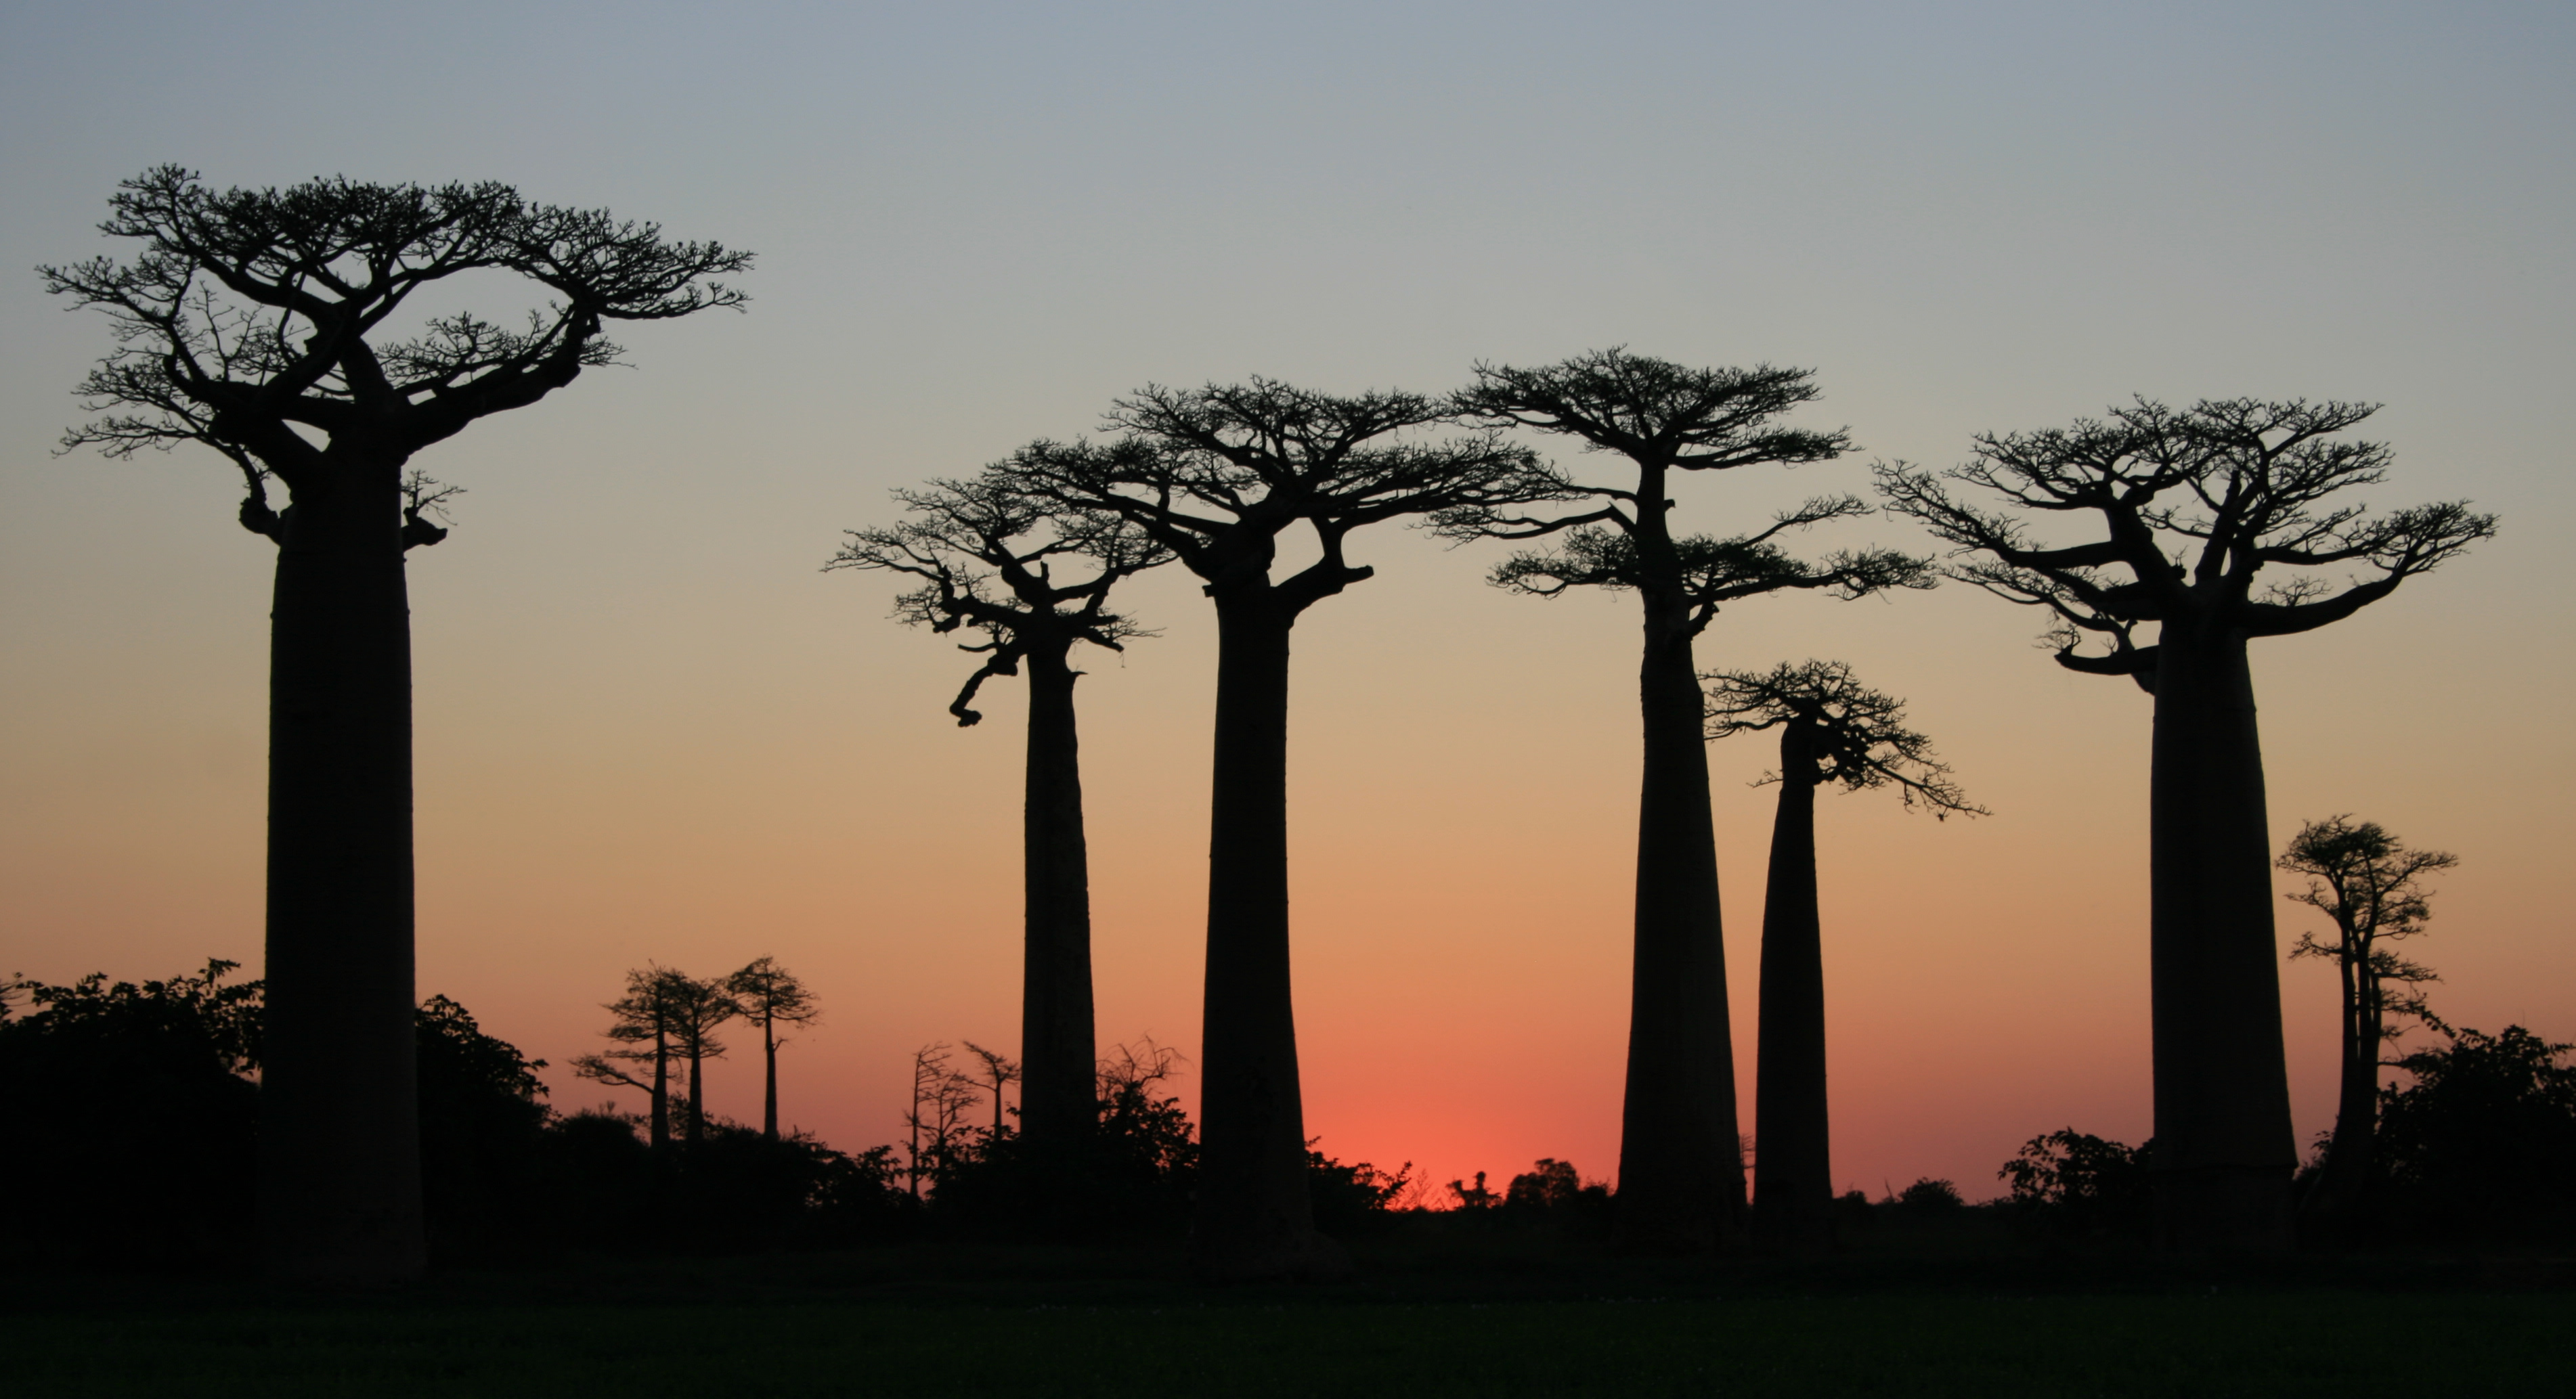 Sunset at the Avenue of the Baobabs